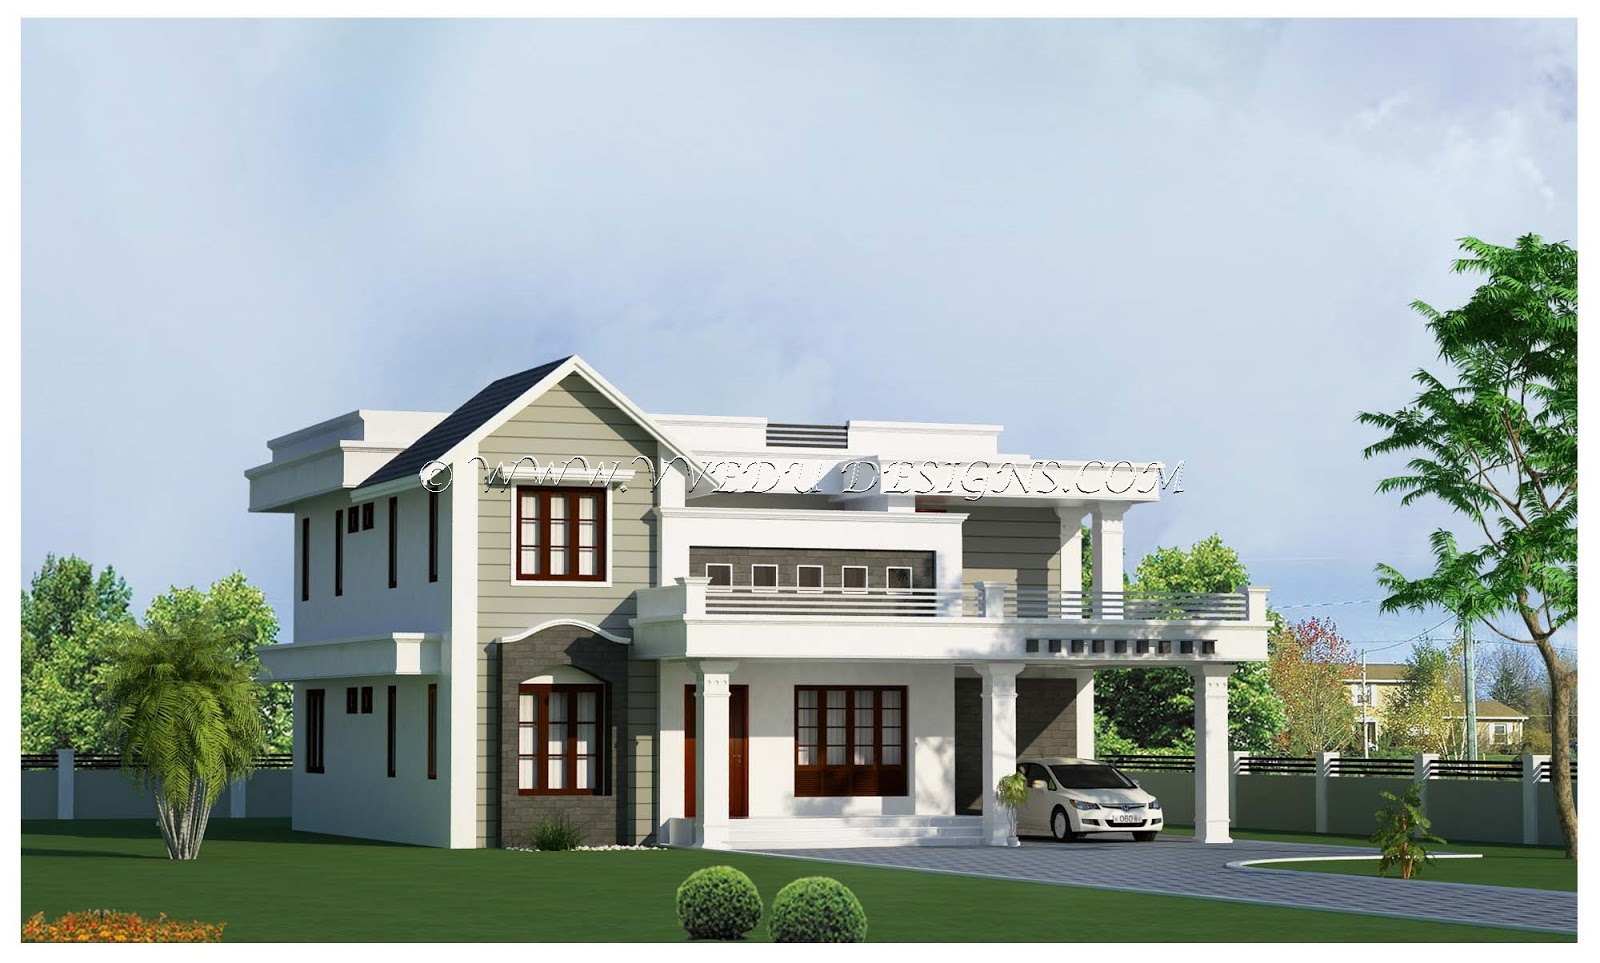 Veedu designs veedu designs kerala home design by navaz ak for Home design 6